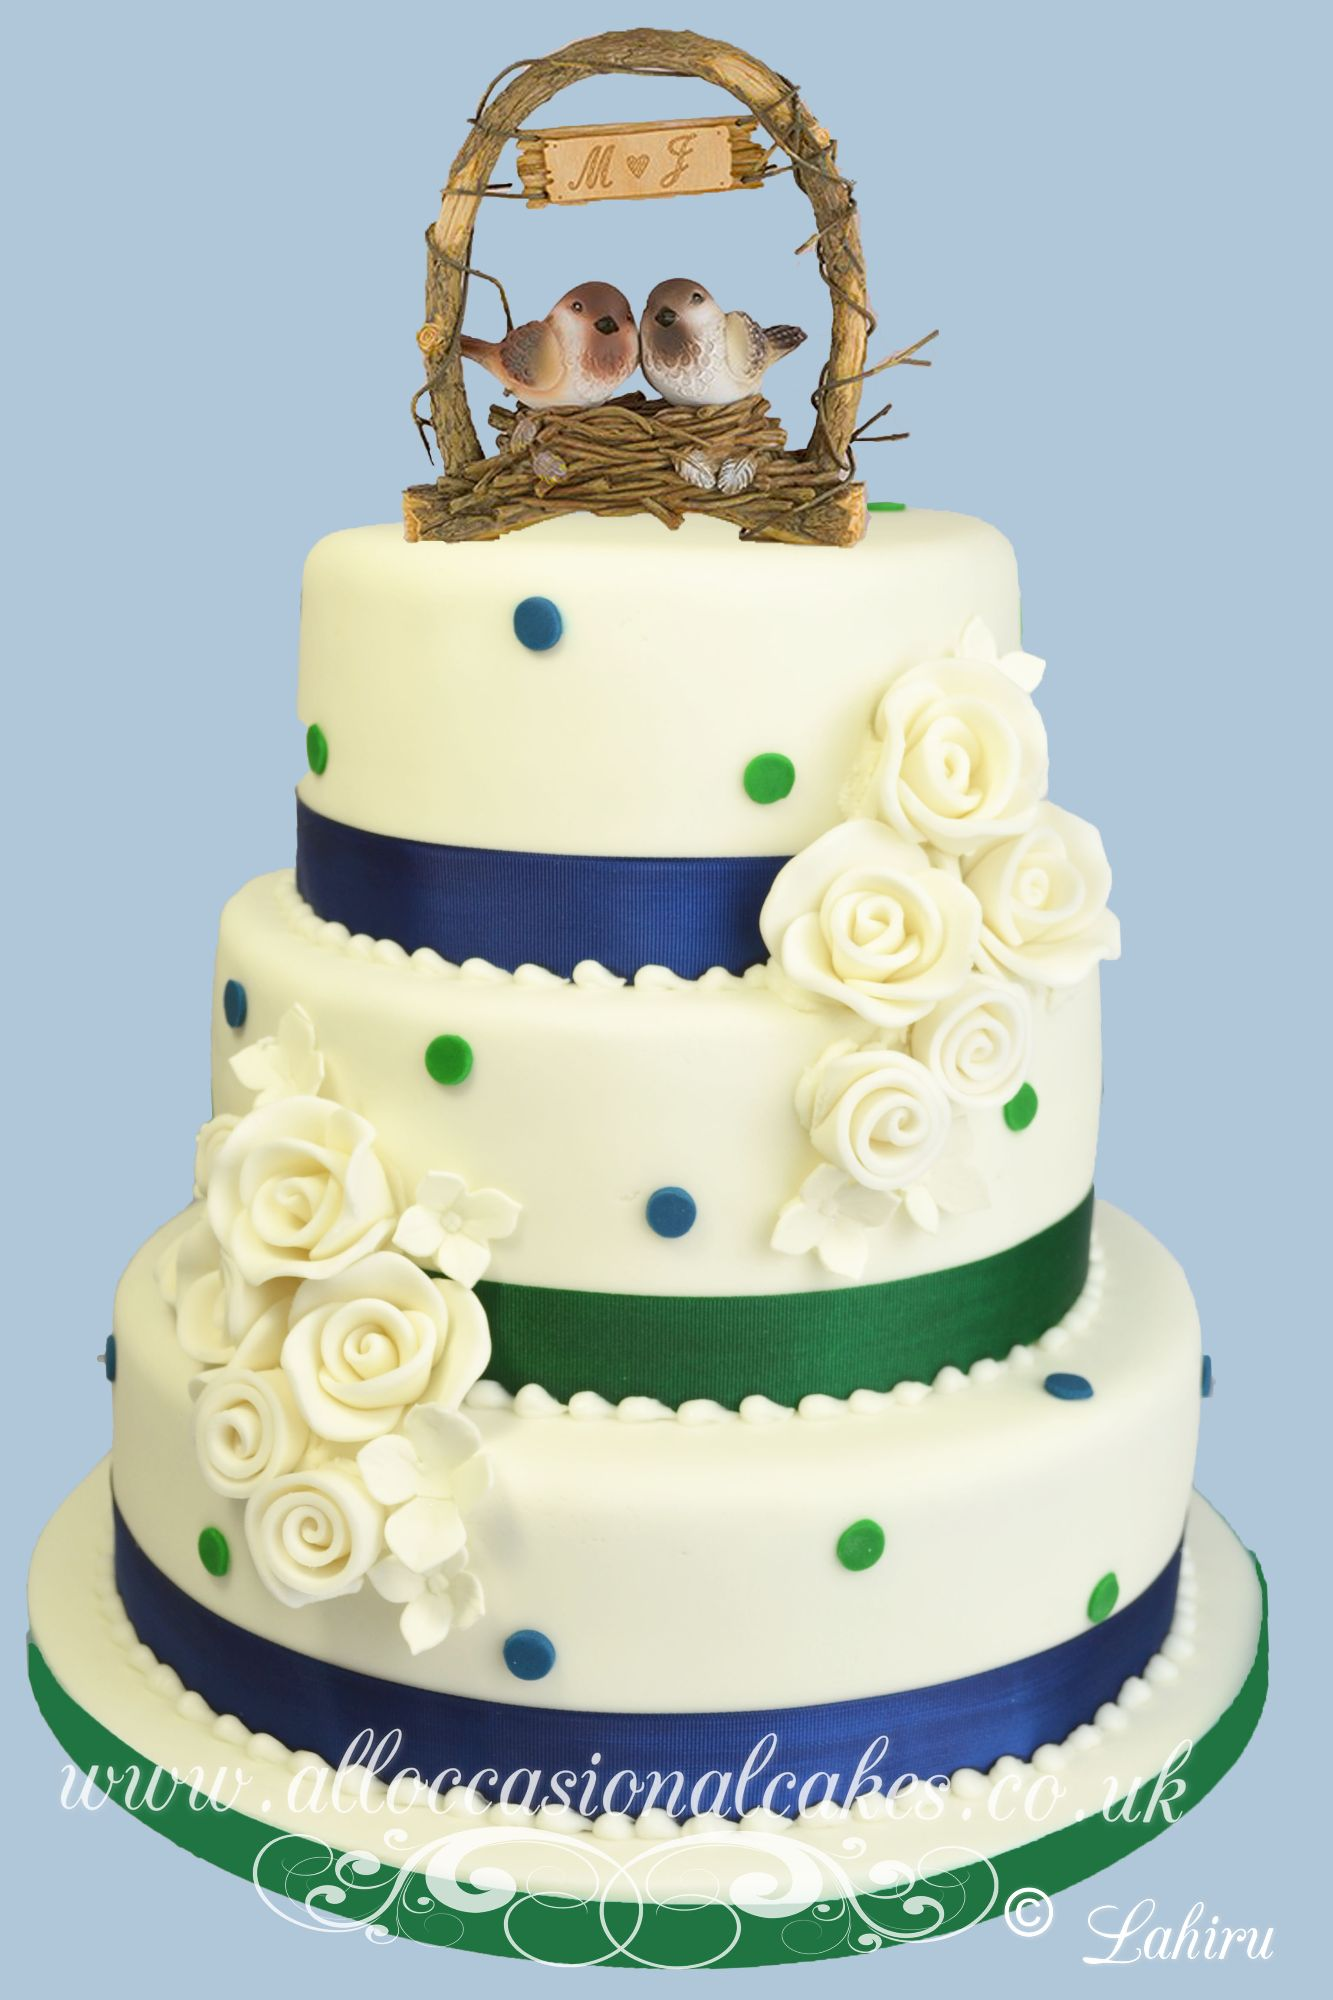 A love nest wedding cake